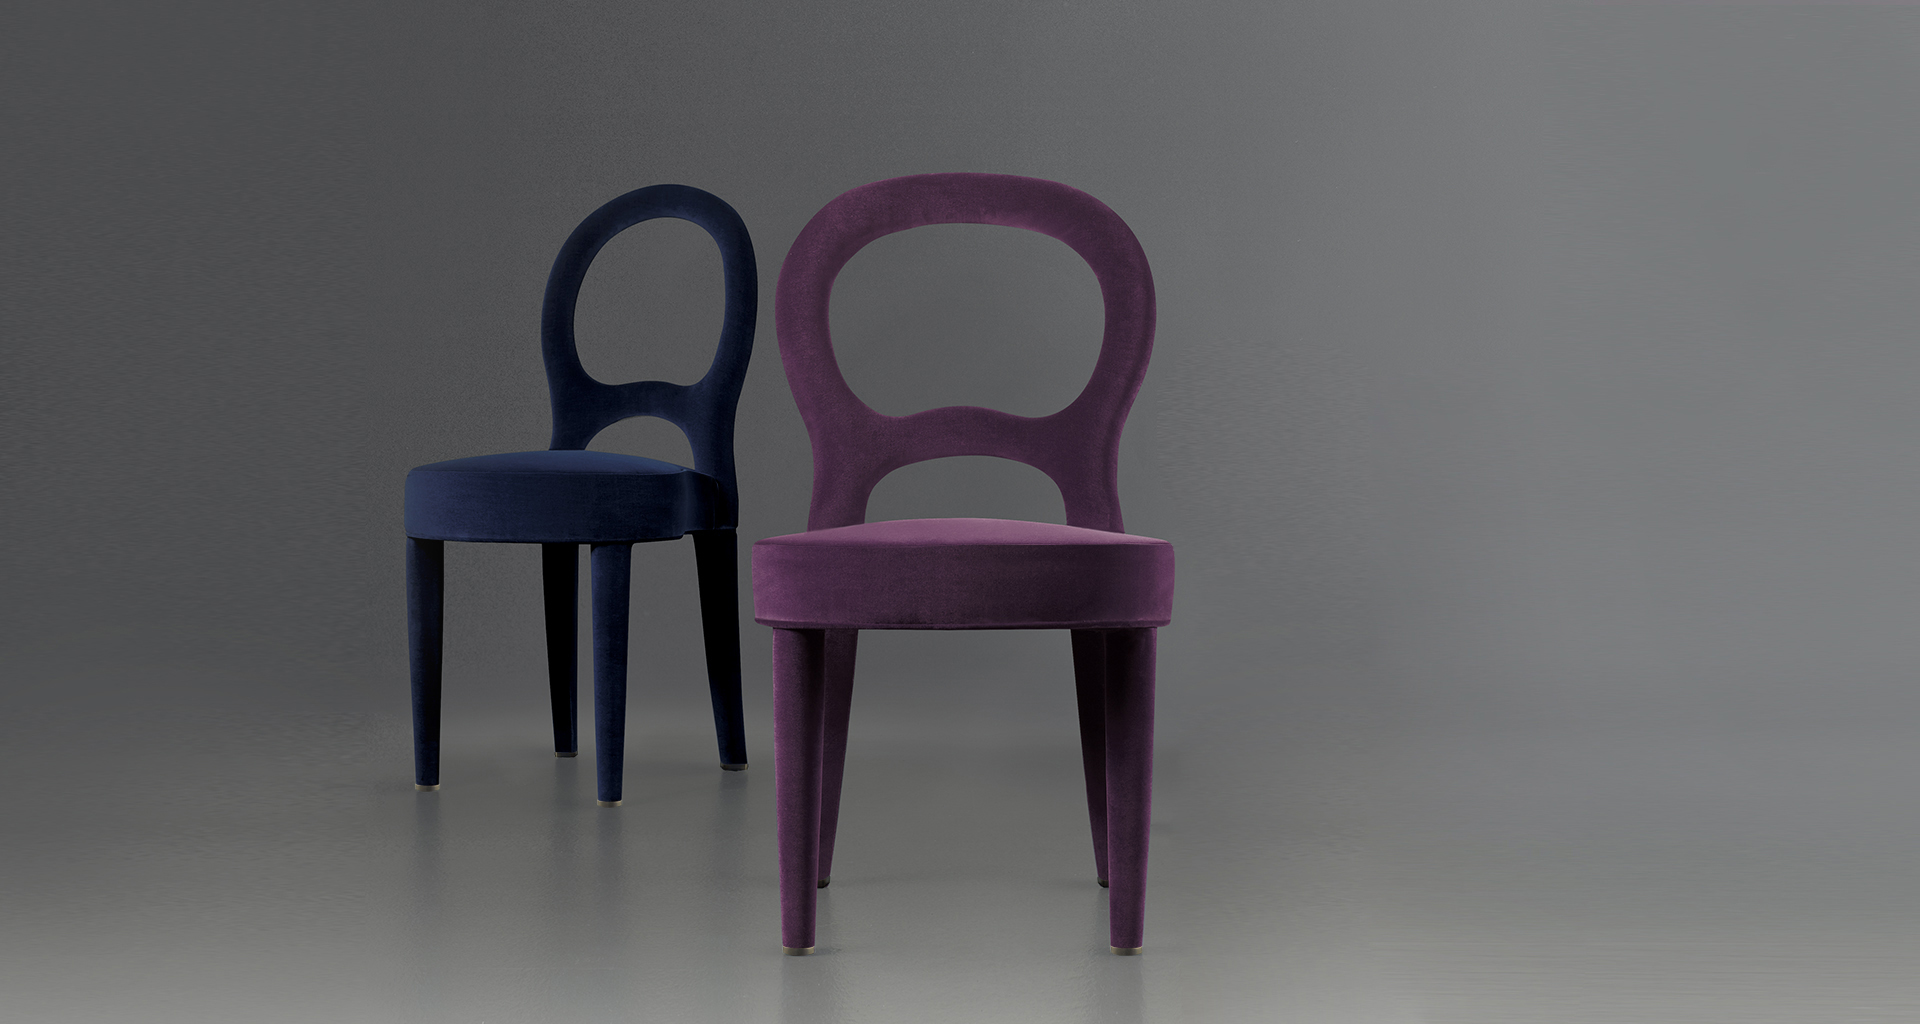 Different versions of Bilou Bilou, a dining chair covered in velvet and linen or nappa leather available in different colors and in the versions standard, large and kids. Bilou Bilou is the most iconic dining chair from Promemoria's catalogue | Promemoria